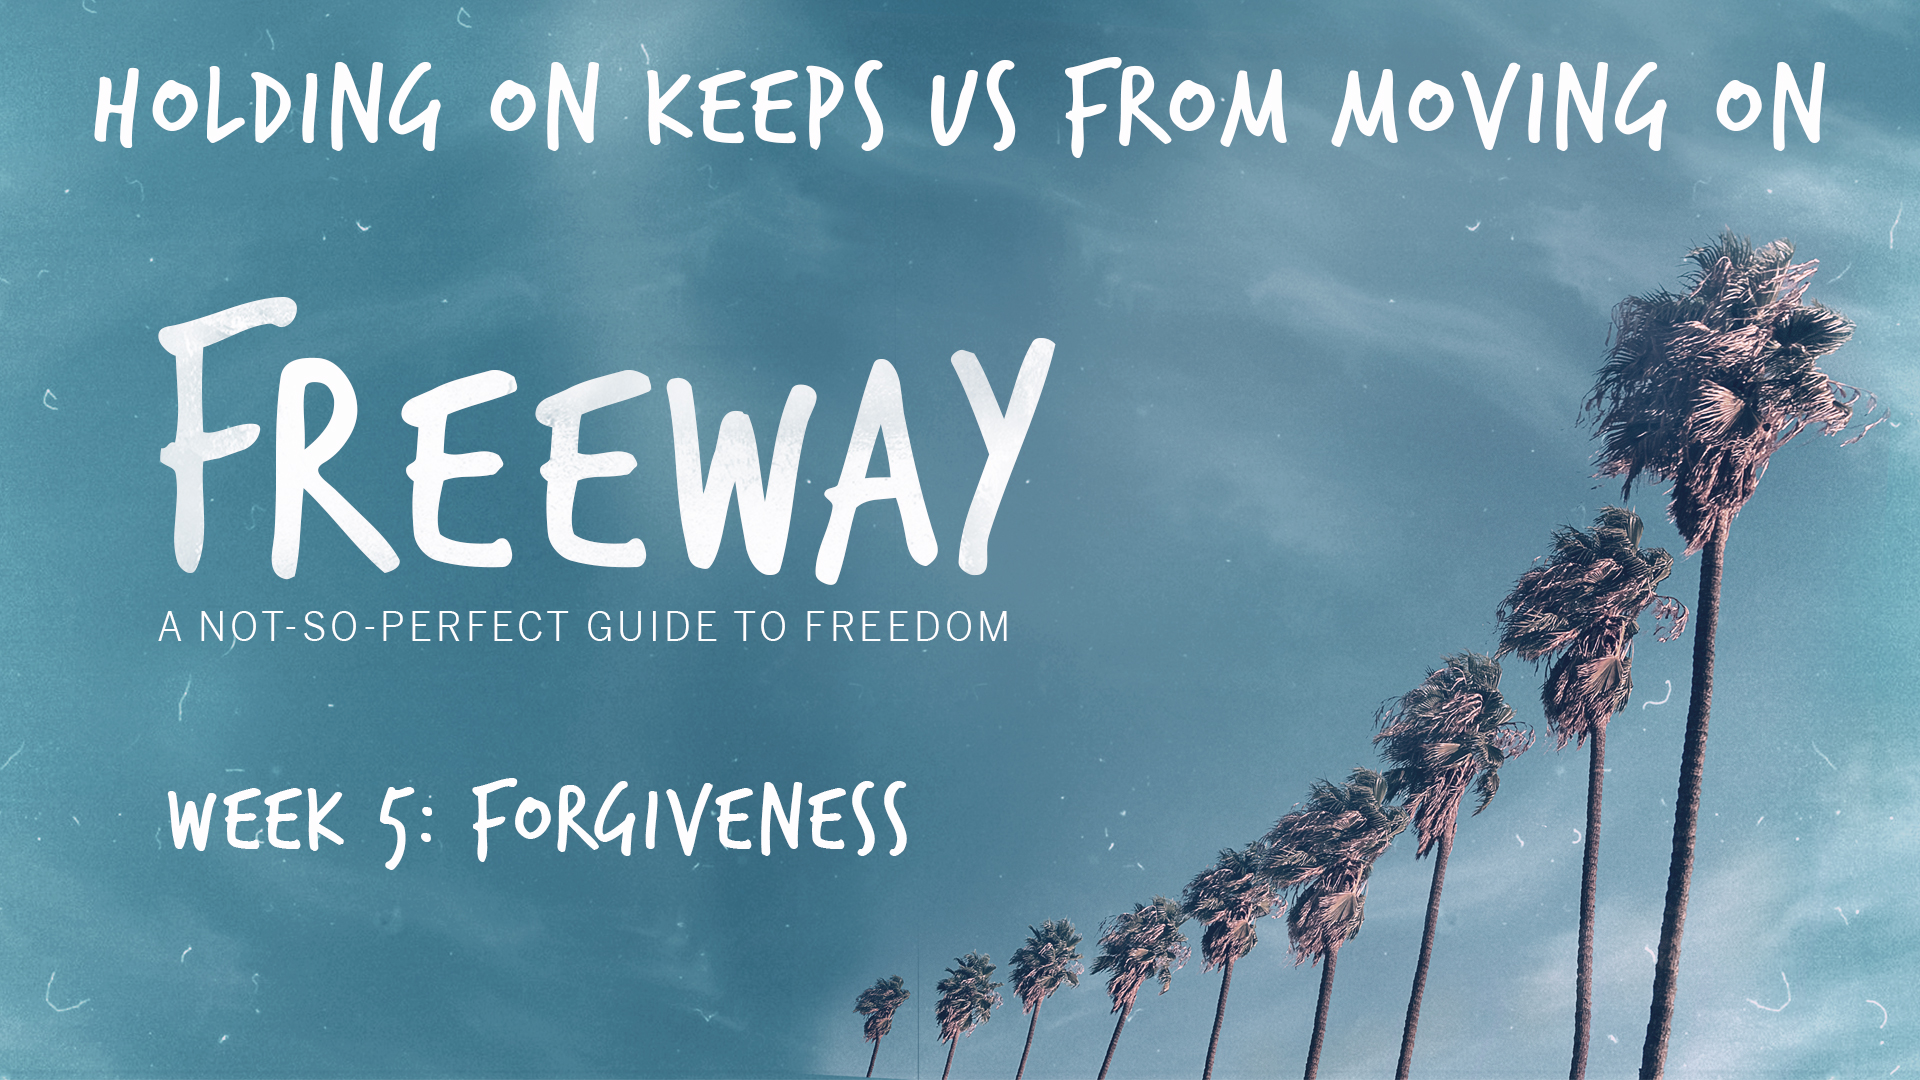 Forgiveness - Holding On Keeps Us From Moving On